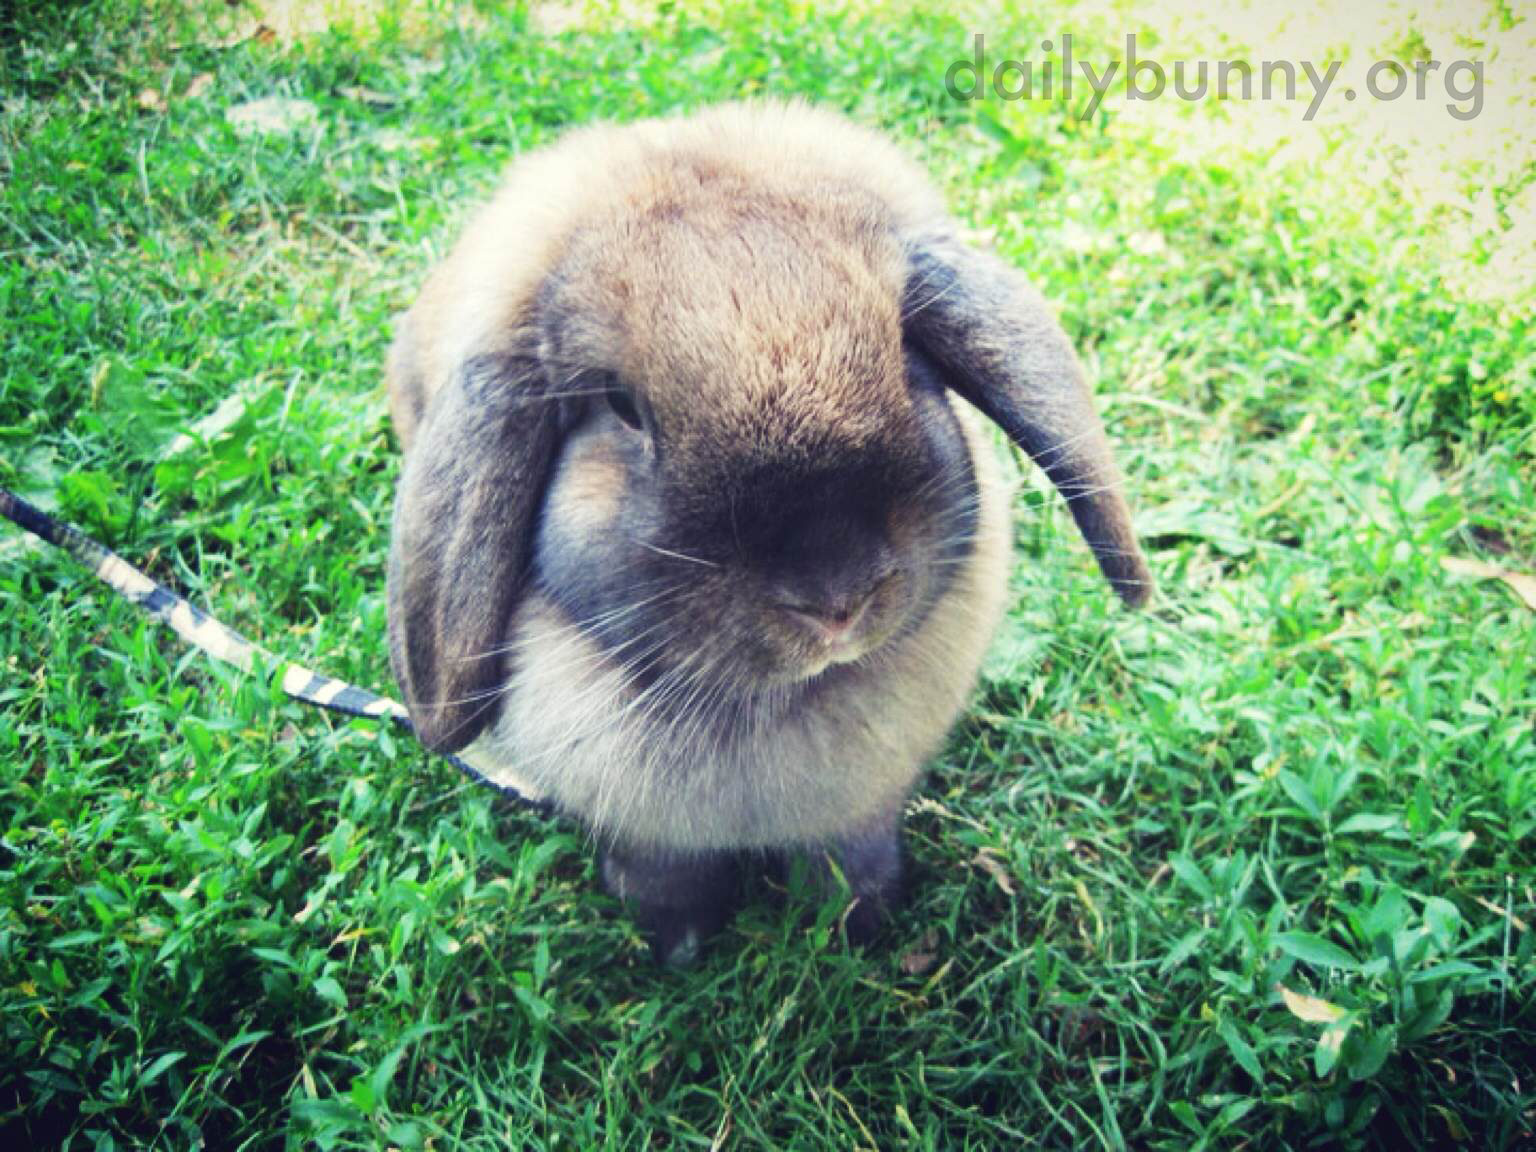 Bunny Gets in a Photograph Before Embarking on a Yard Exploration